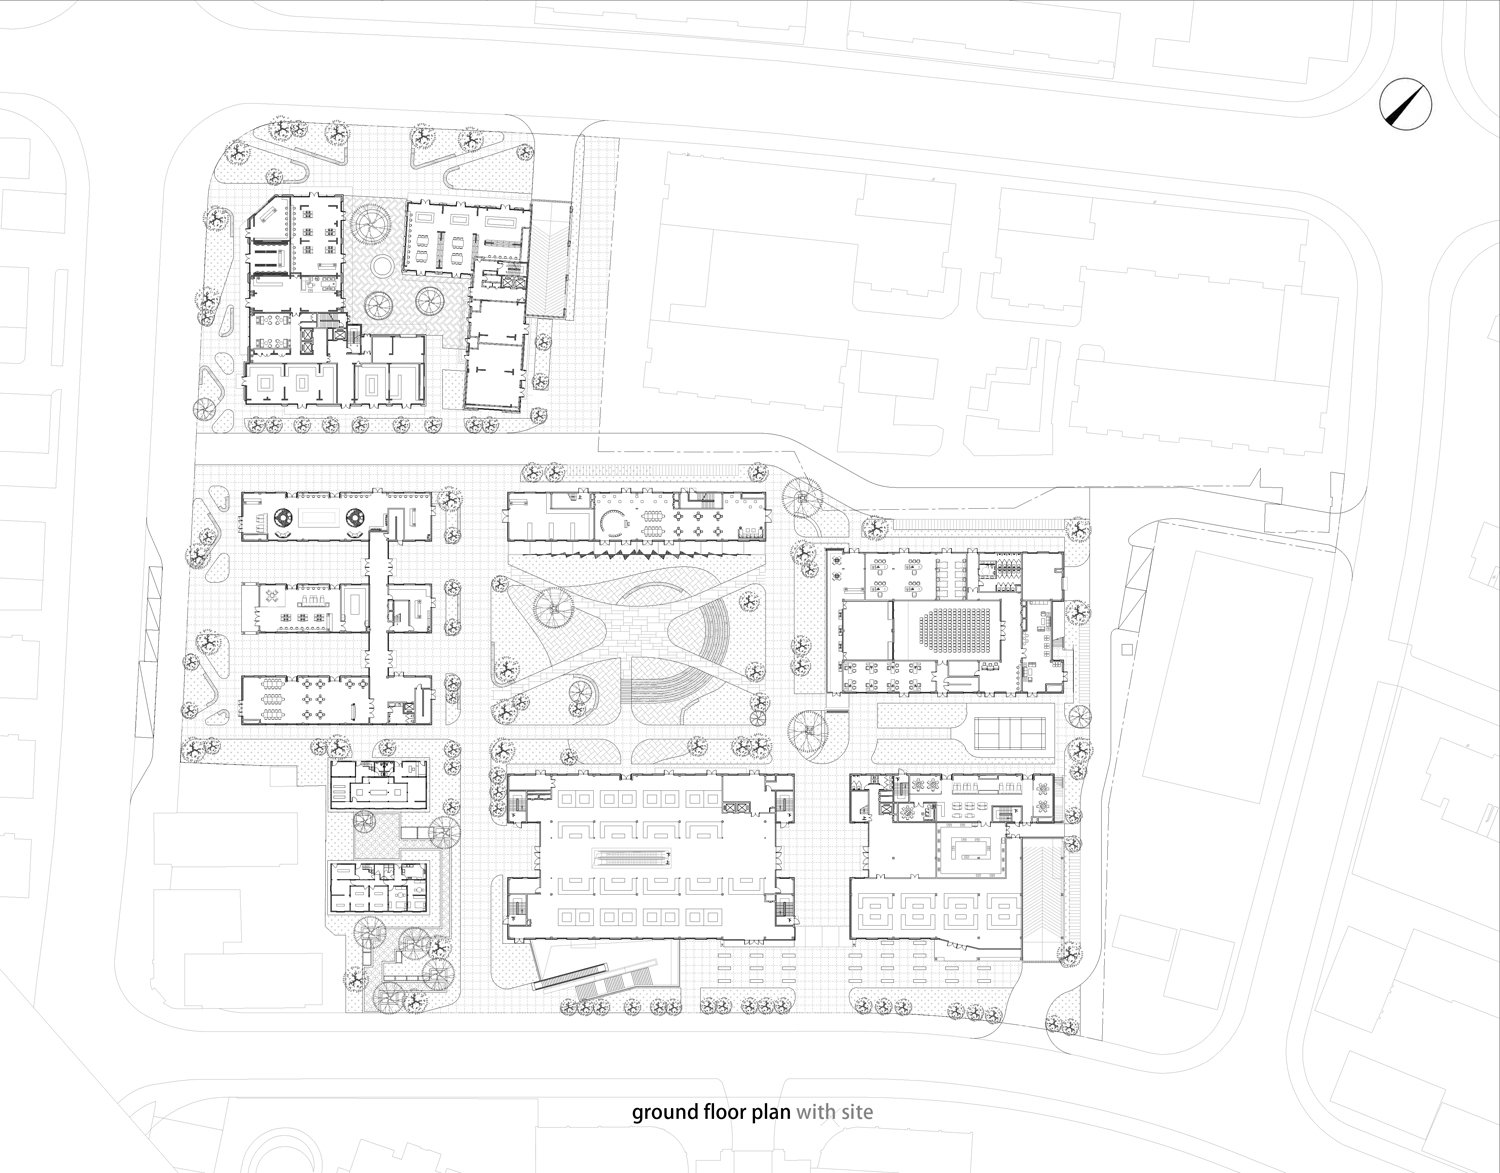 ground floor plan Lacime Architects}